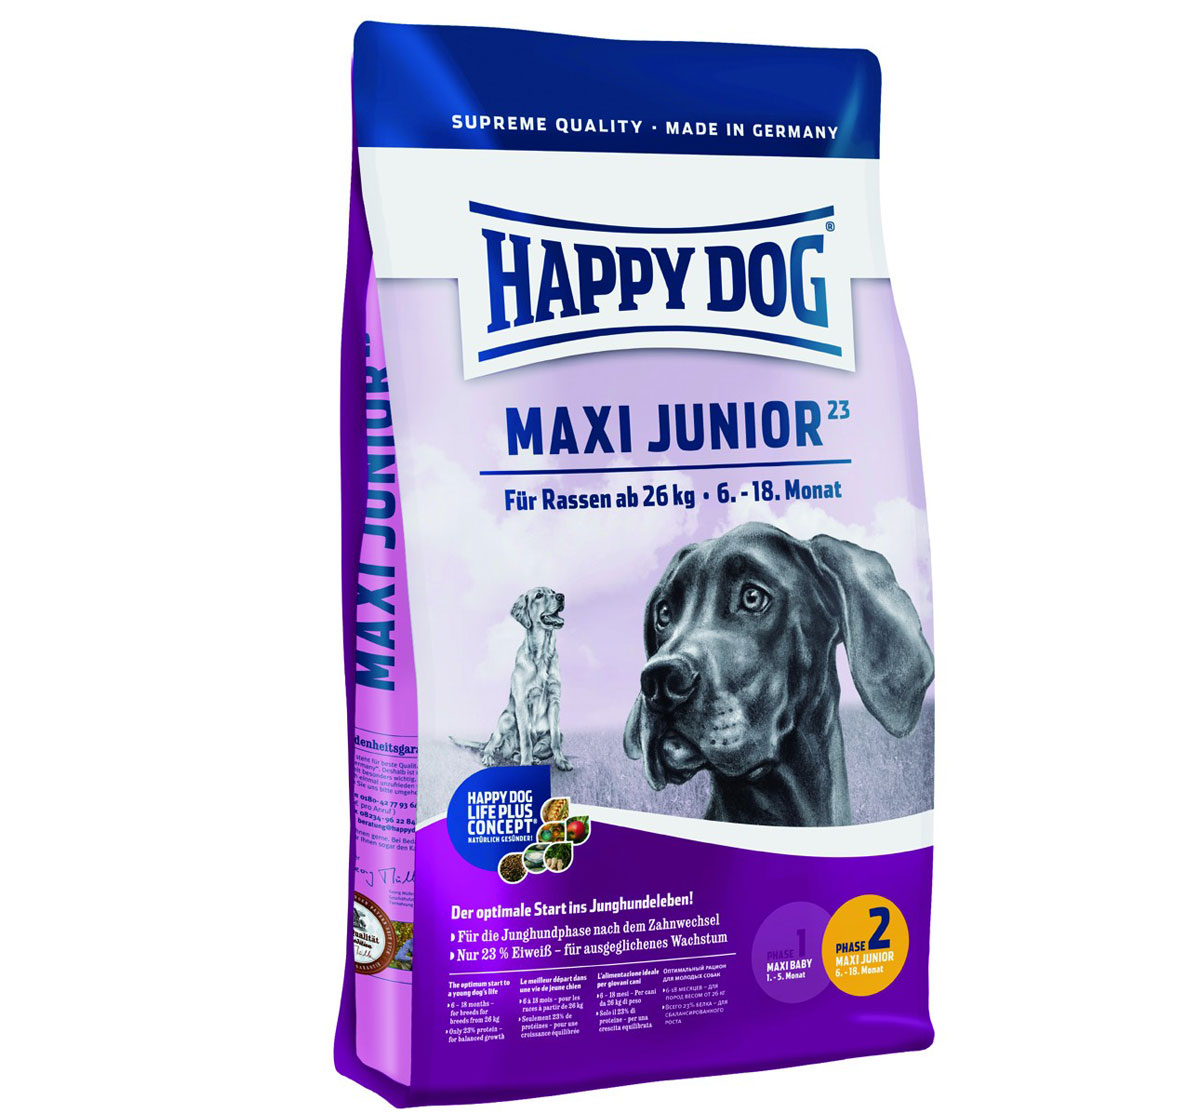 happy dog maxi breed junior dog food 4 kg dogspot online pet supply store. Black Bedroom Furniture Sets. Home Design Ideas